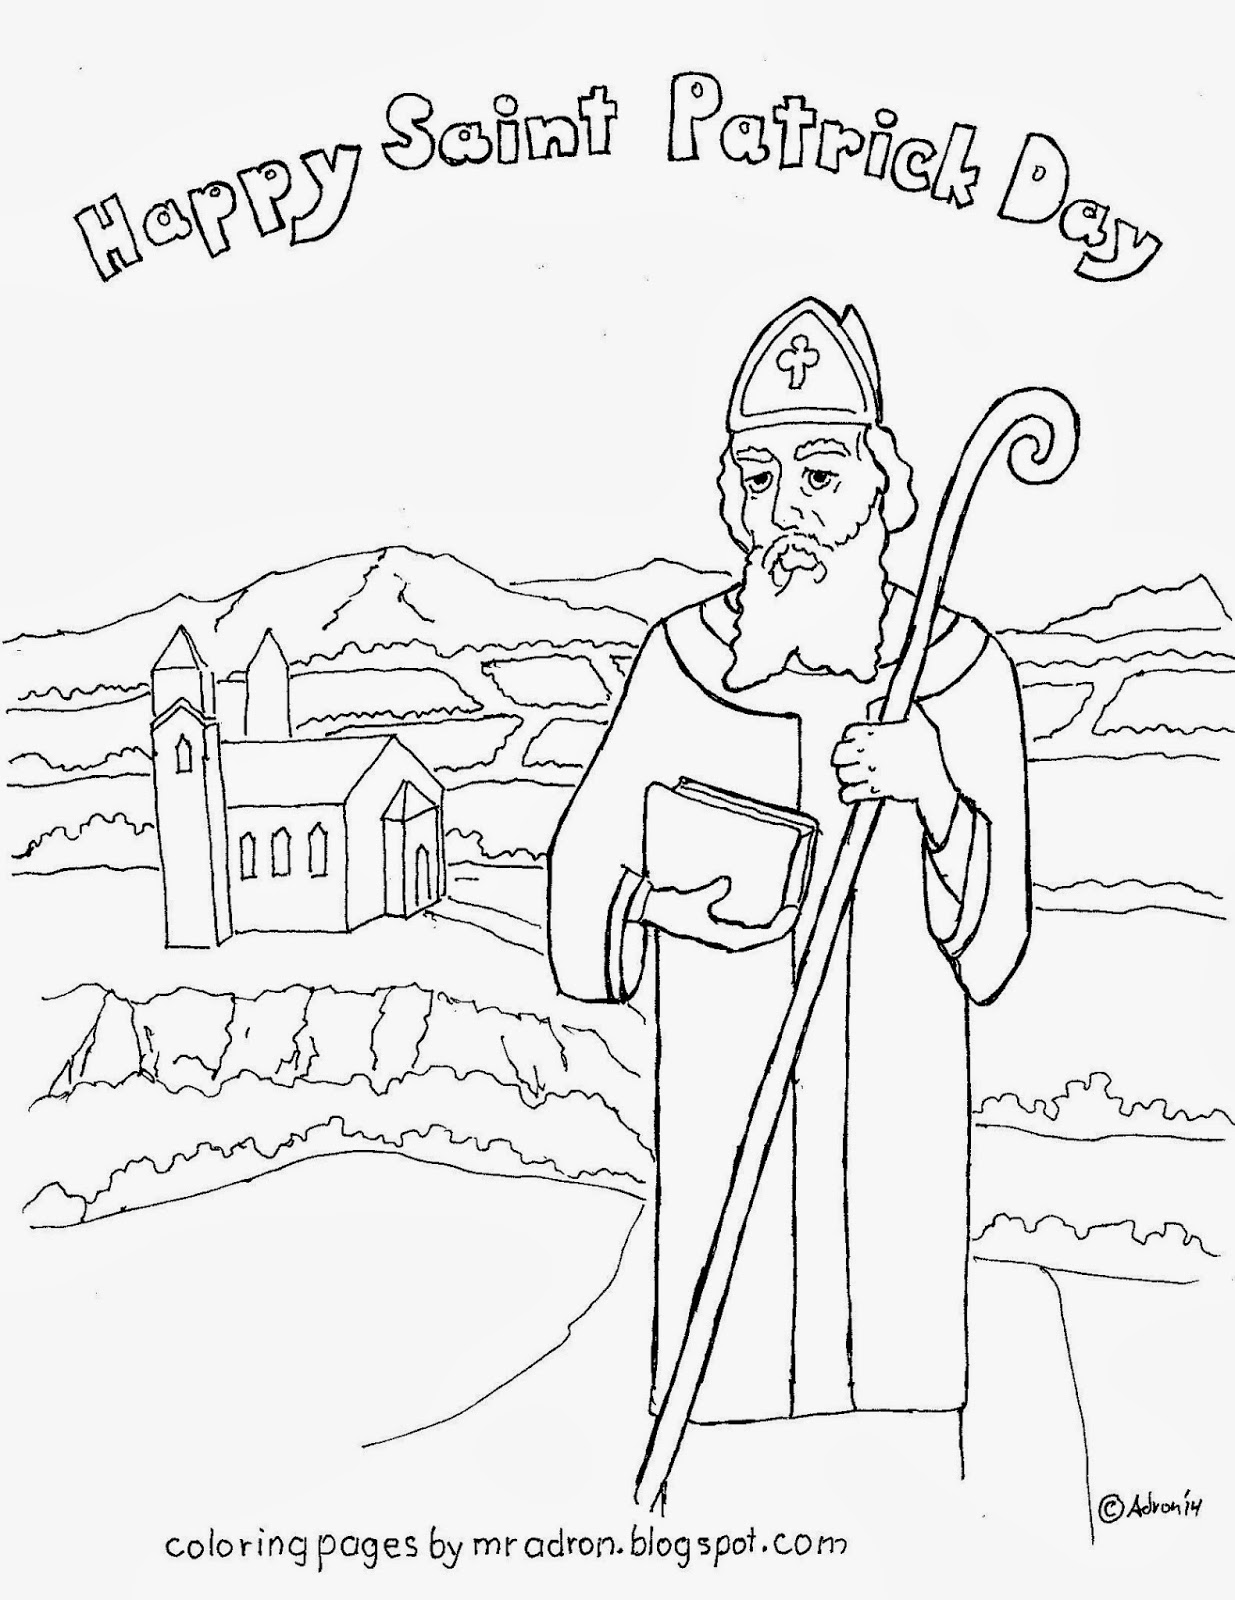 Coloring Pages for Kids by Mr. Adron: Free Happy St ...